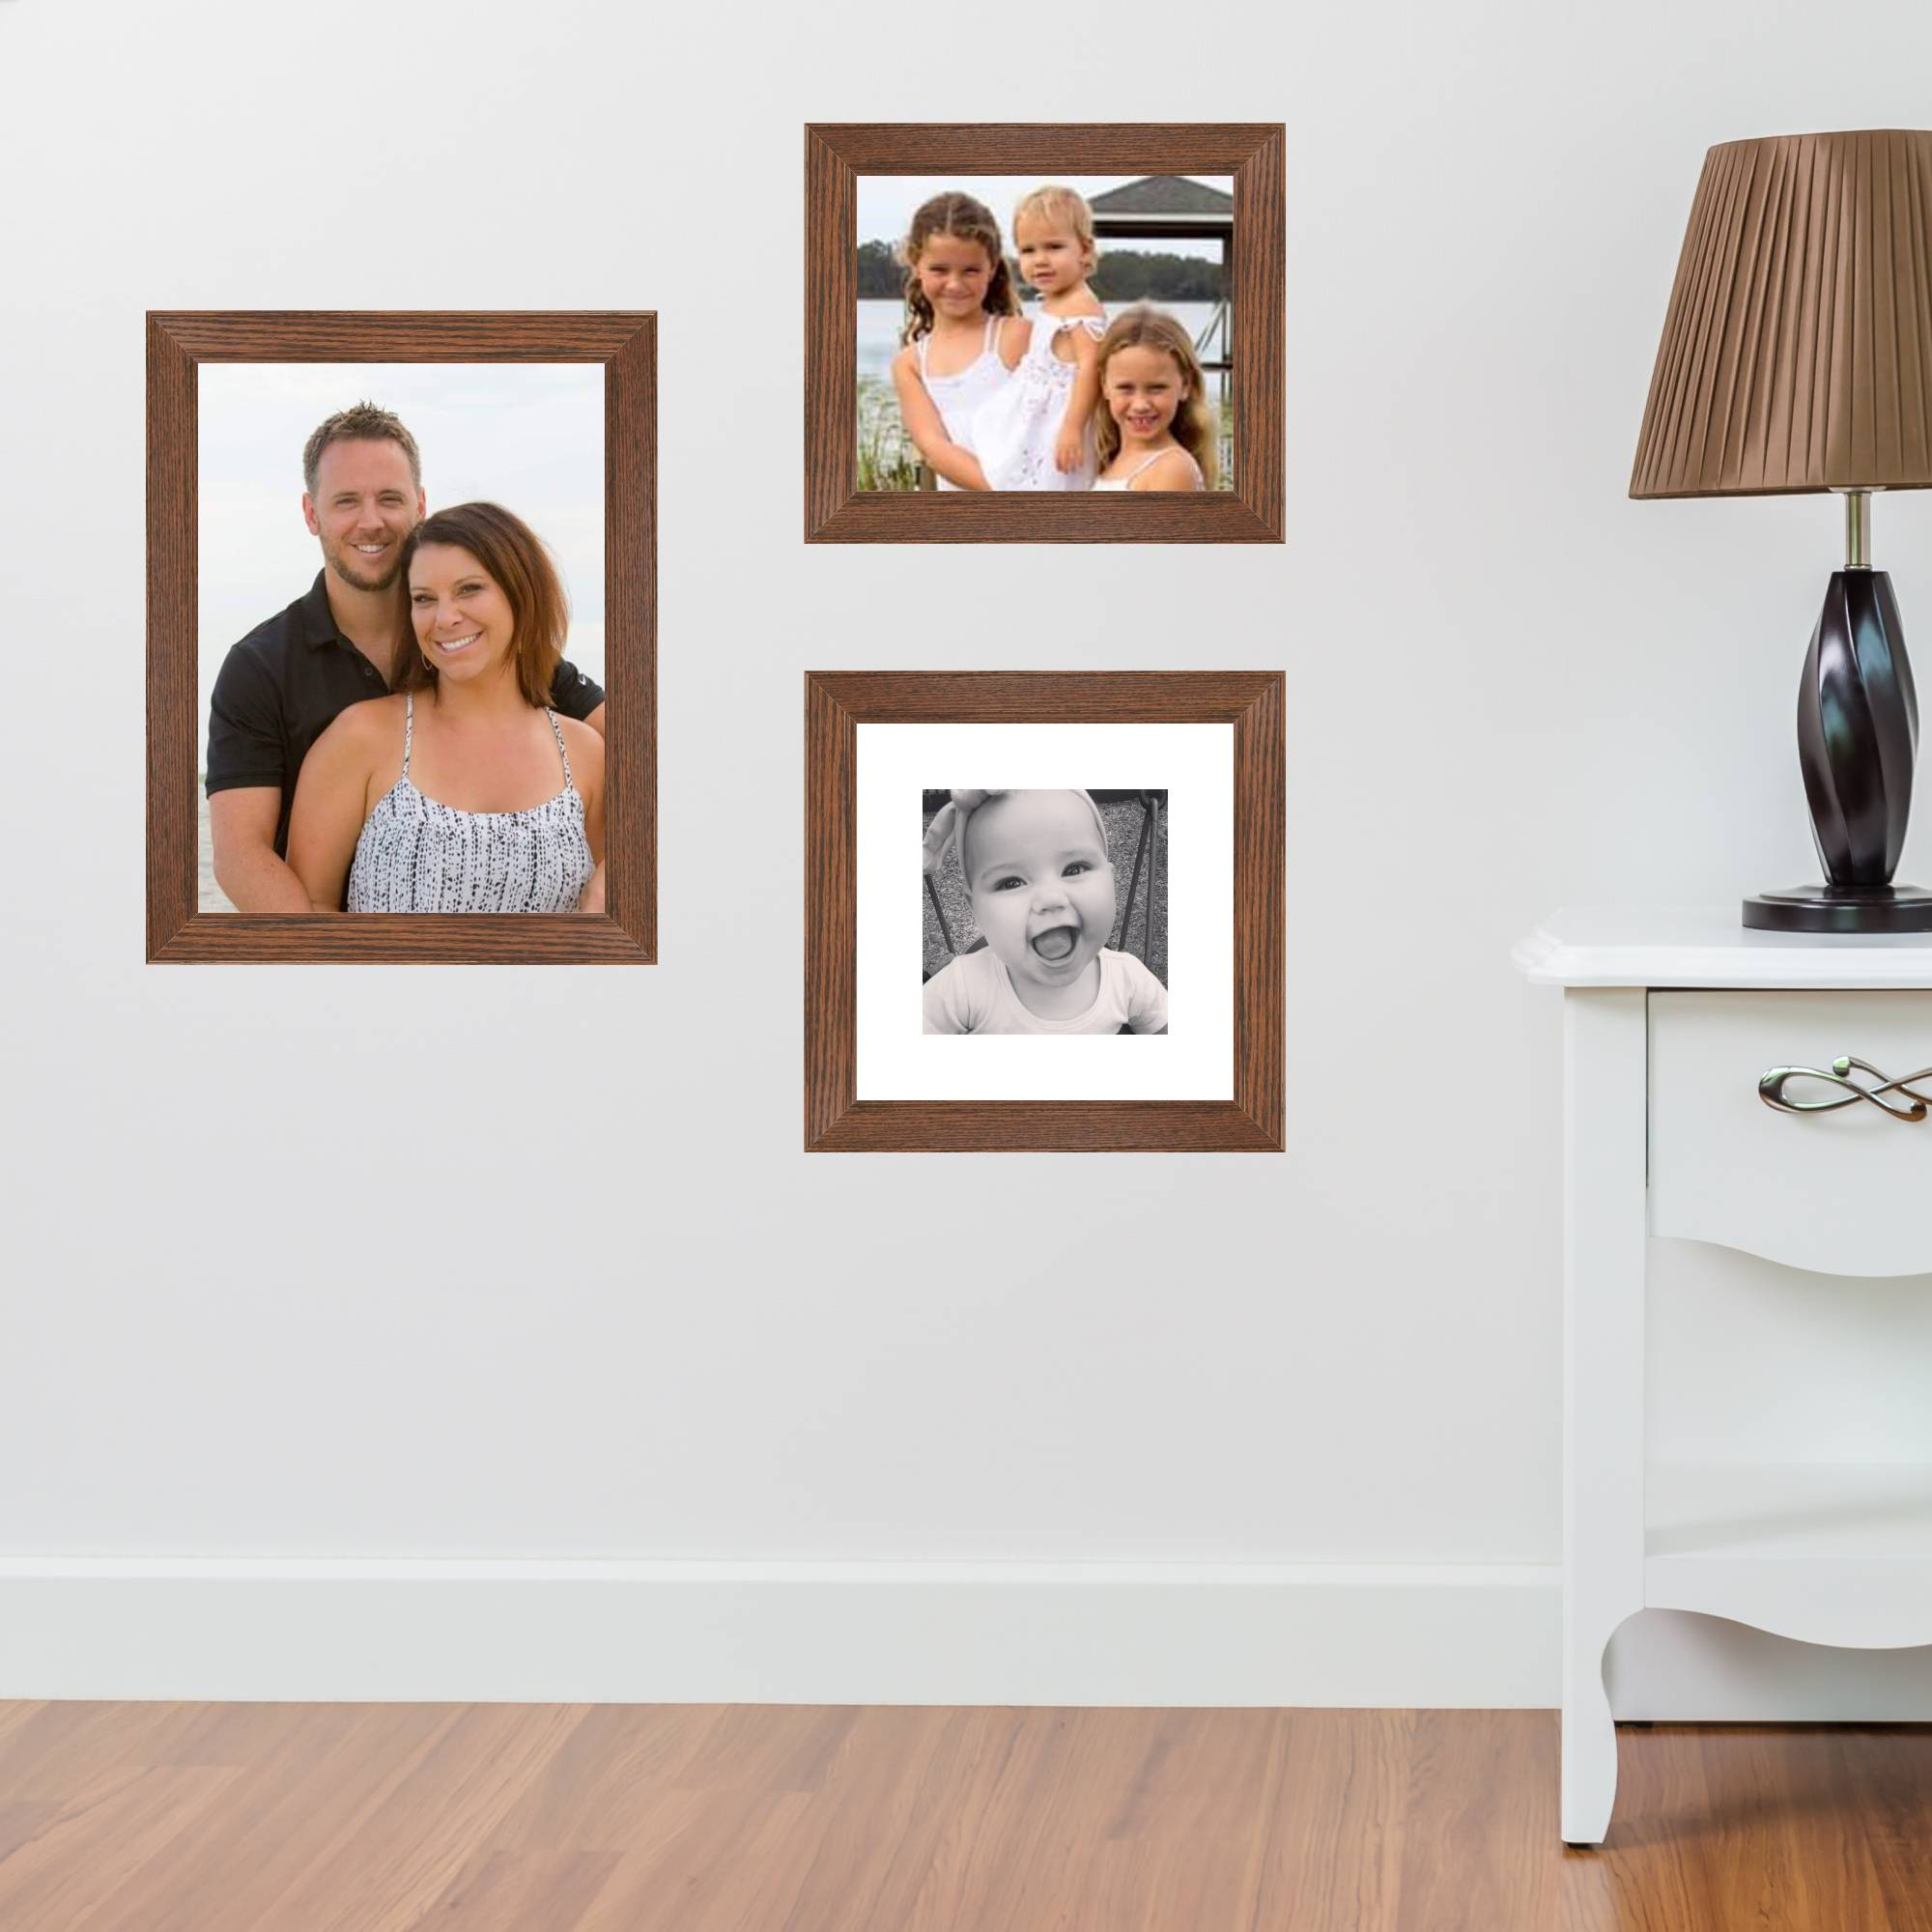 All sizes of picture frames